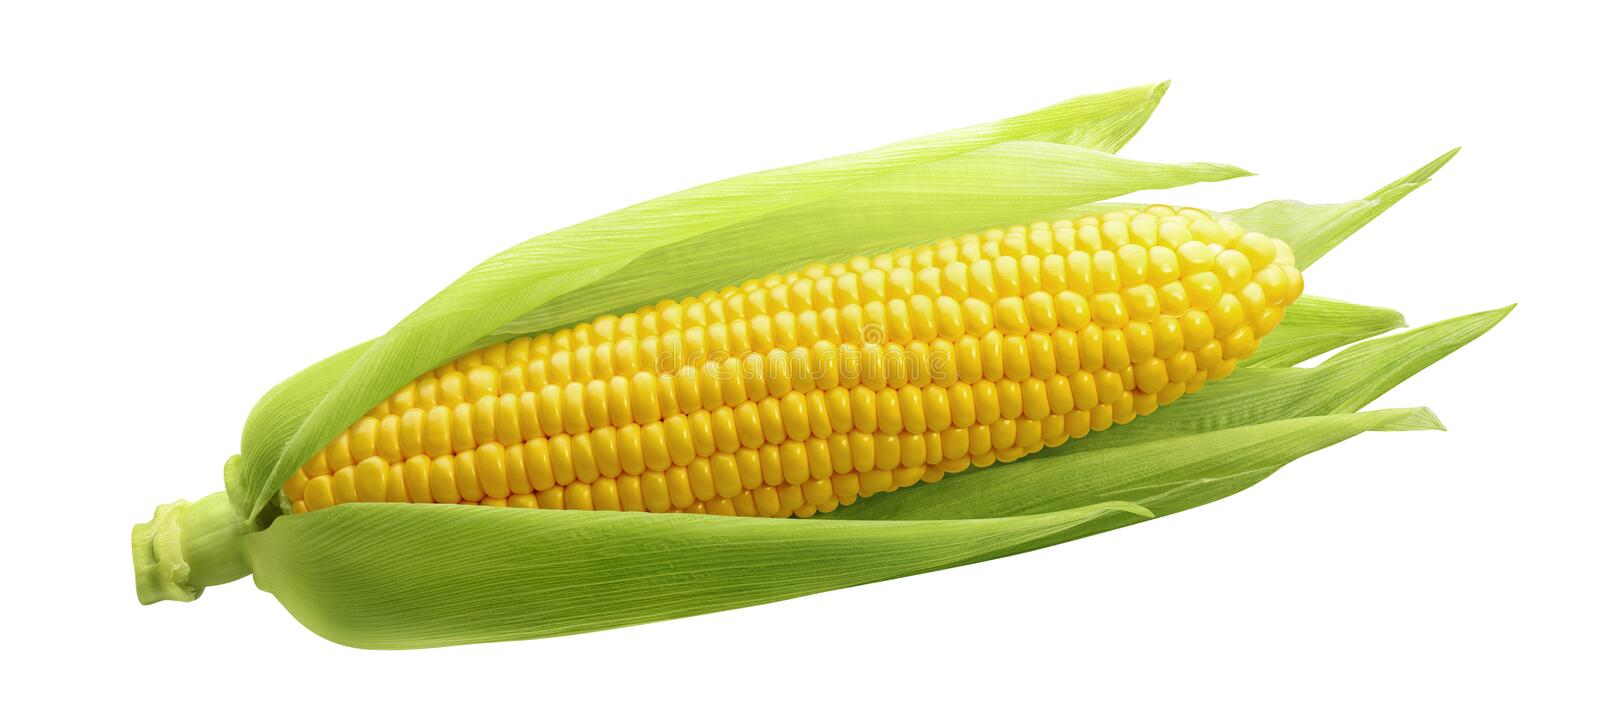 Single ear of corn isolated on white background royalty free stock photos